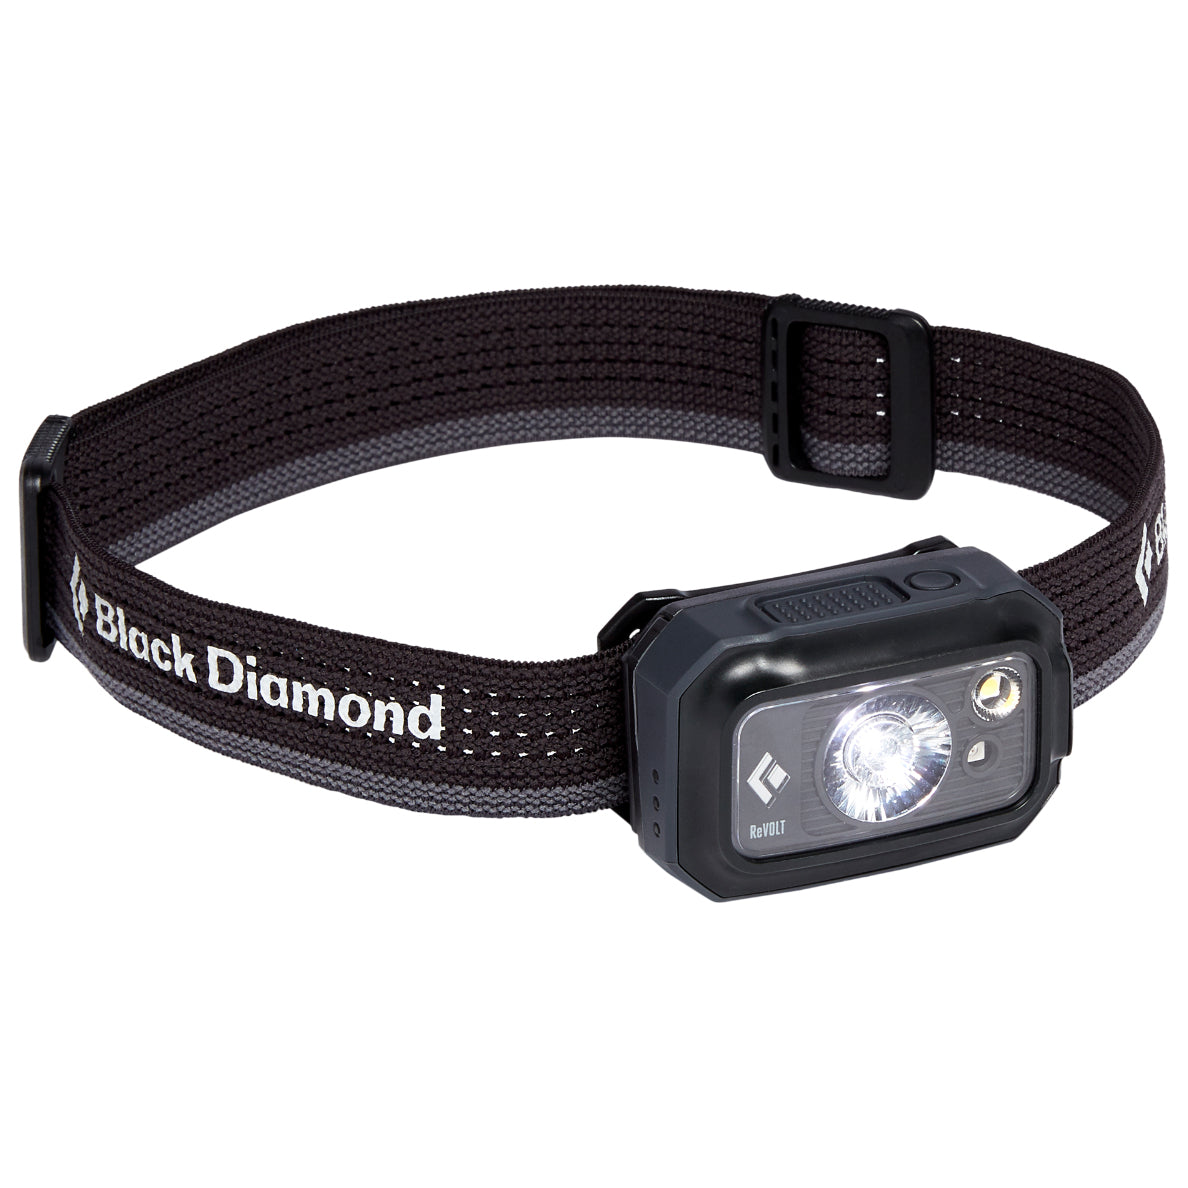 Black Diamond Revolt 350 Headlamp, front/side view in graphite colour